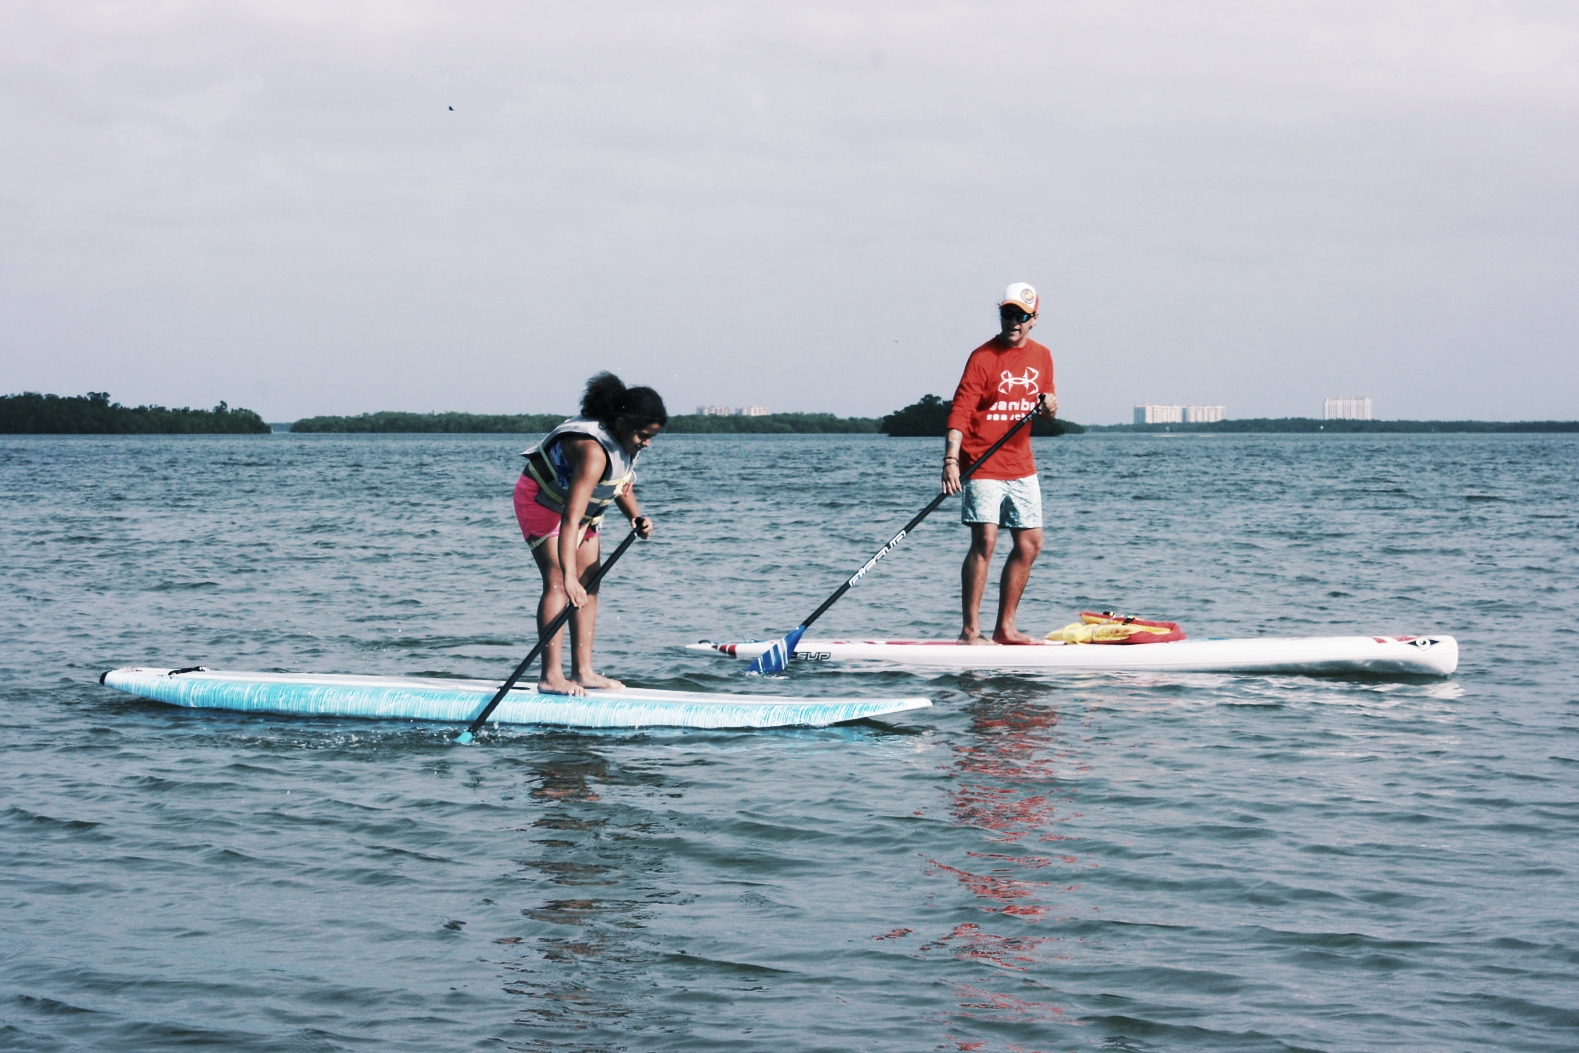 Johnny Rader teaches a stand up paddleboarding lesson on San Carlos Bay.